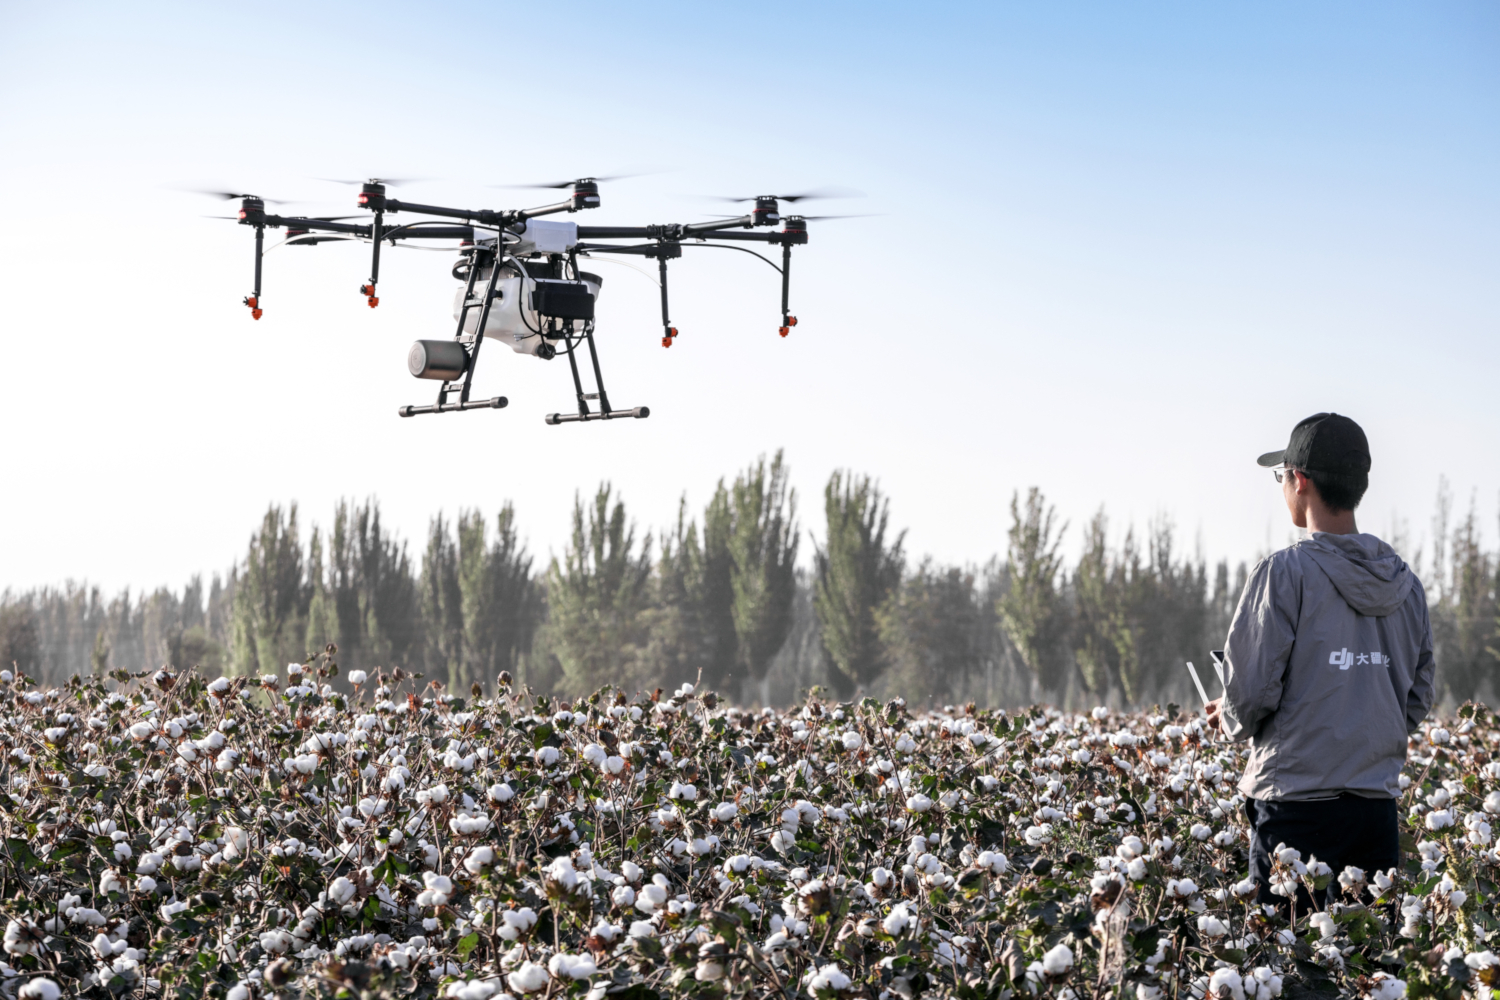 Spraying Drone flying over a cotton field (Image by DJI-Agras from Pixabay)